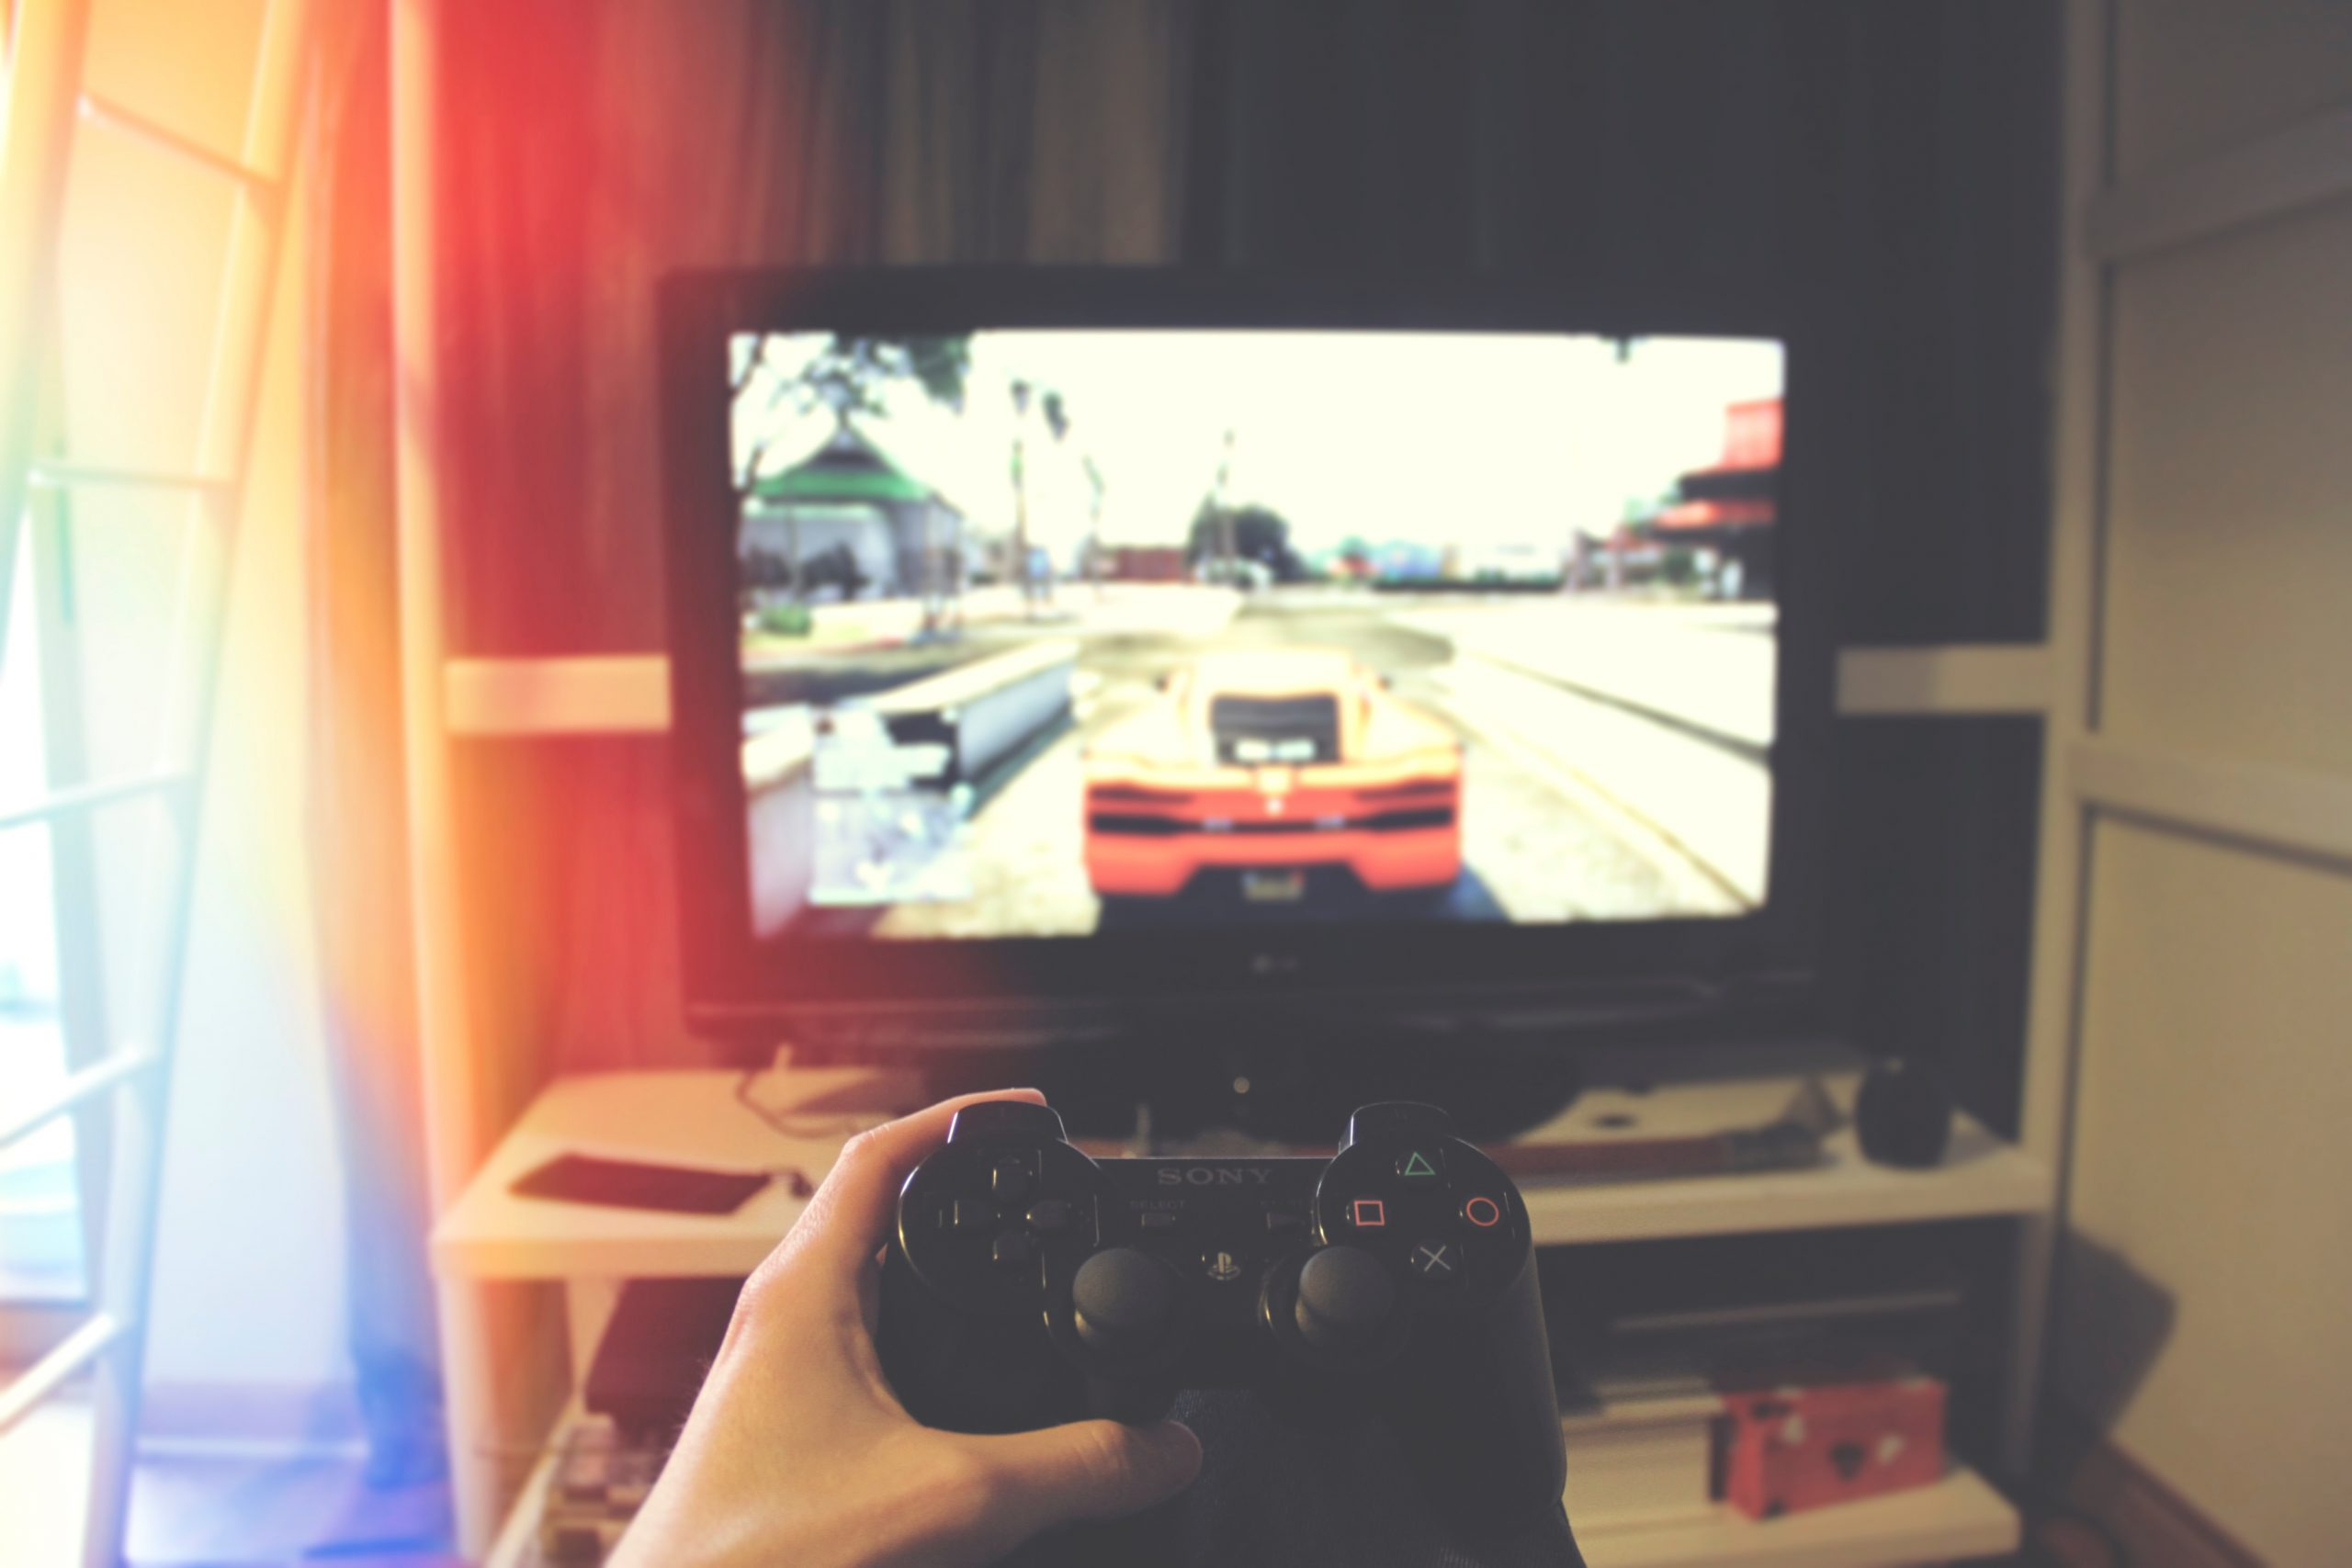 Public enemy: Gaming addiction can affect different stage of age